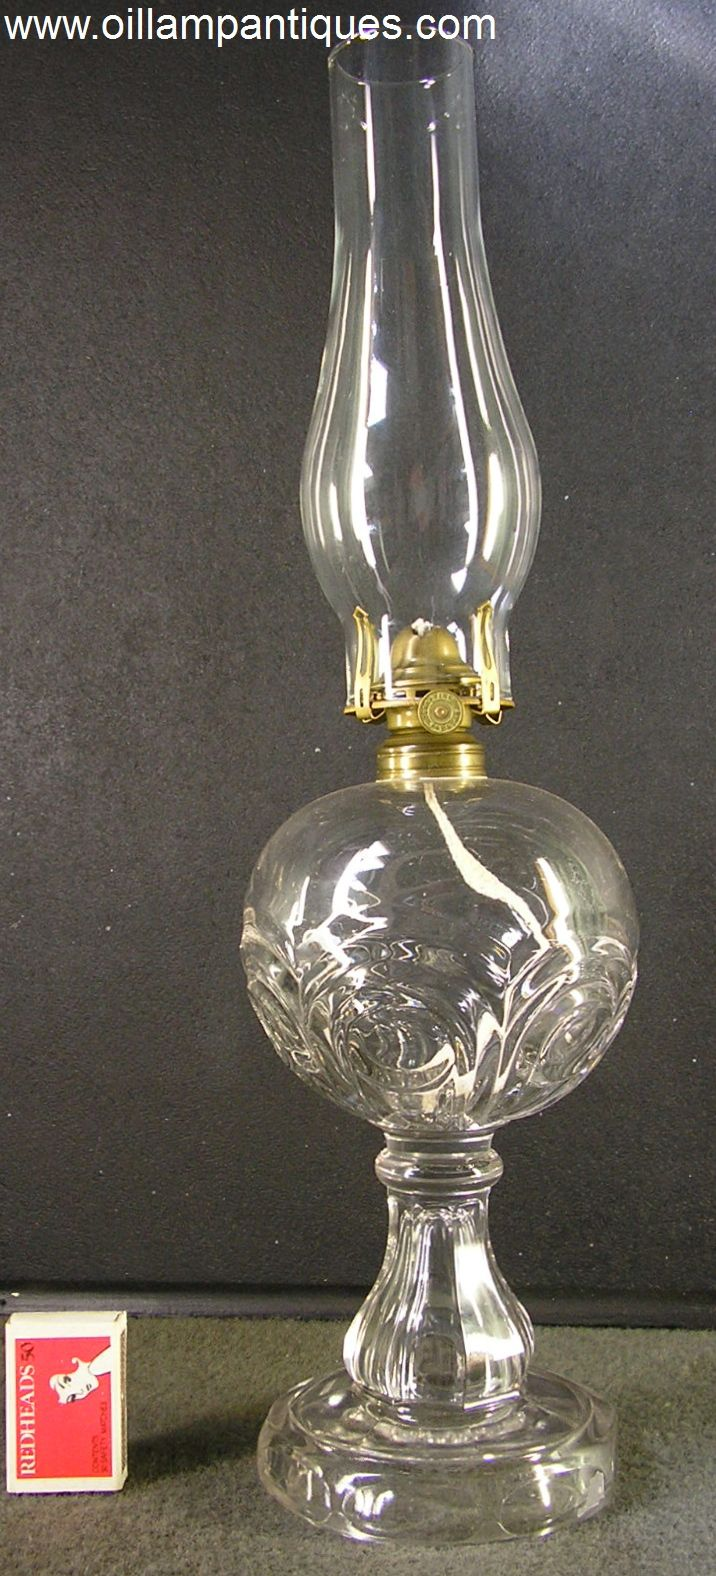 Regent antiques lights antique victorian oil lamp c 1860 - The Pattern Of This Antique Glass Oil Lamp Is Panelled Bullseye A Number Of Lamps With This Pattern Are Shown In Catherine Thuro S First Book On Oil Lamps